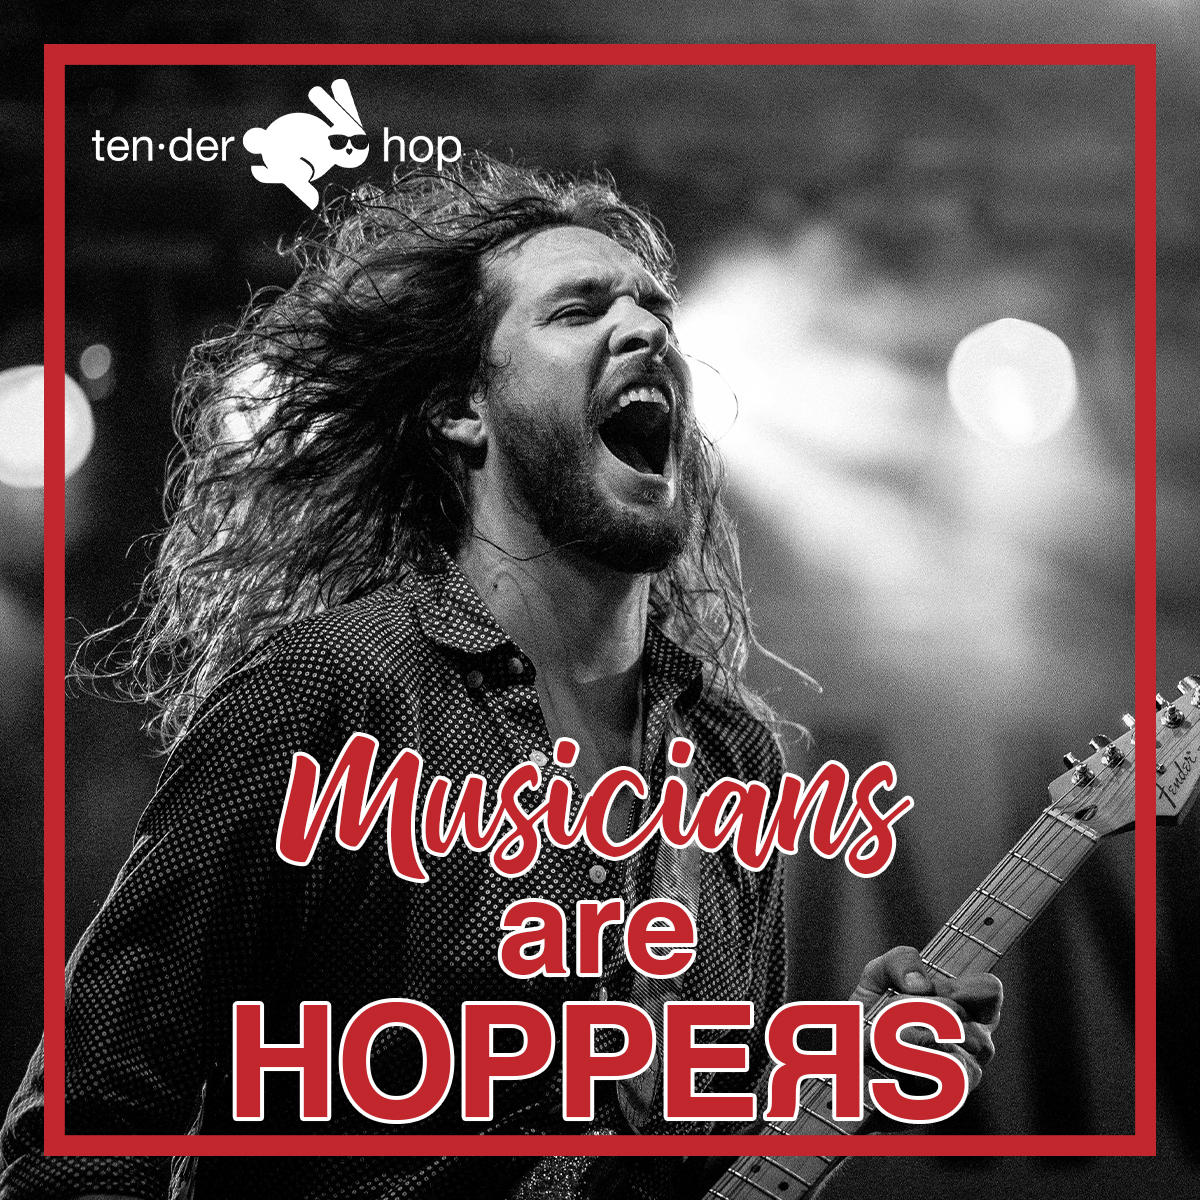 Musicians are HOPPERS